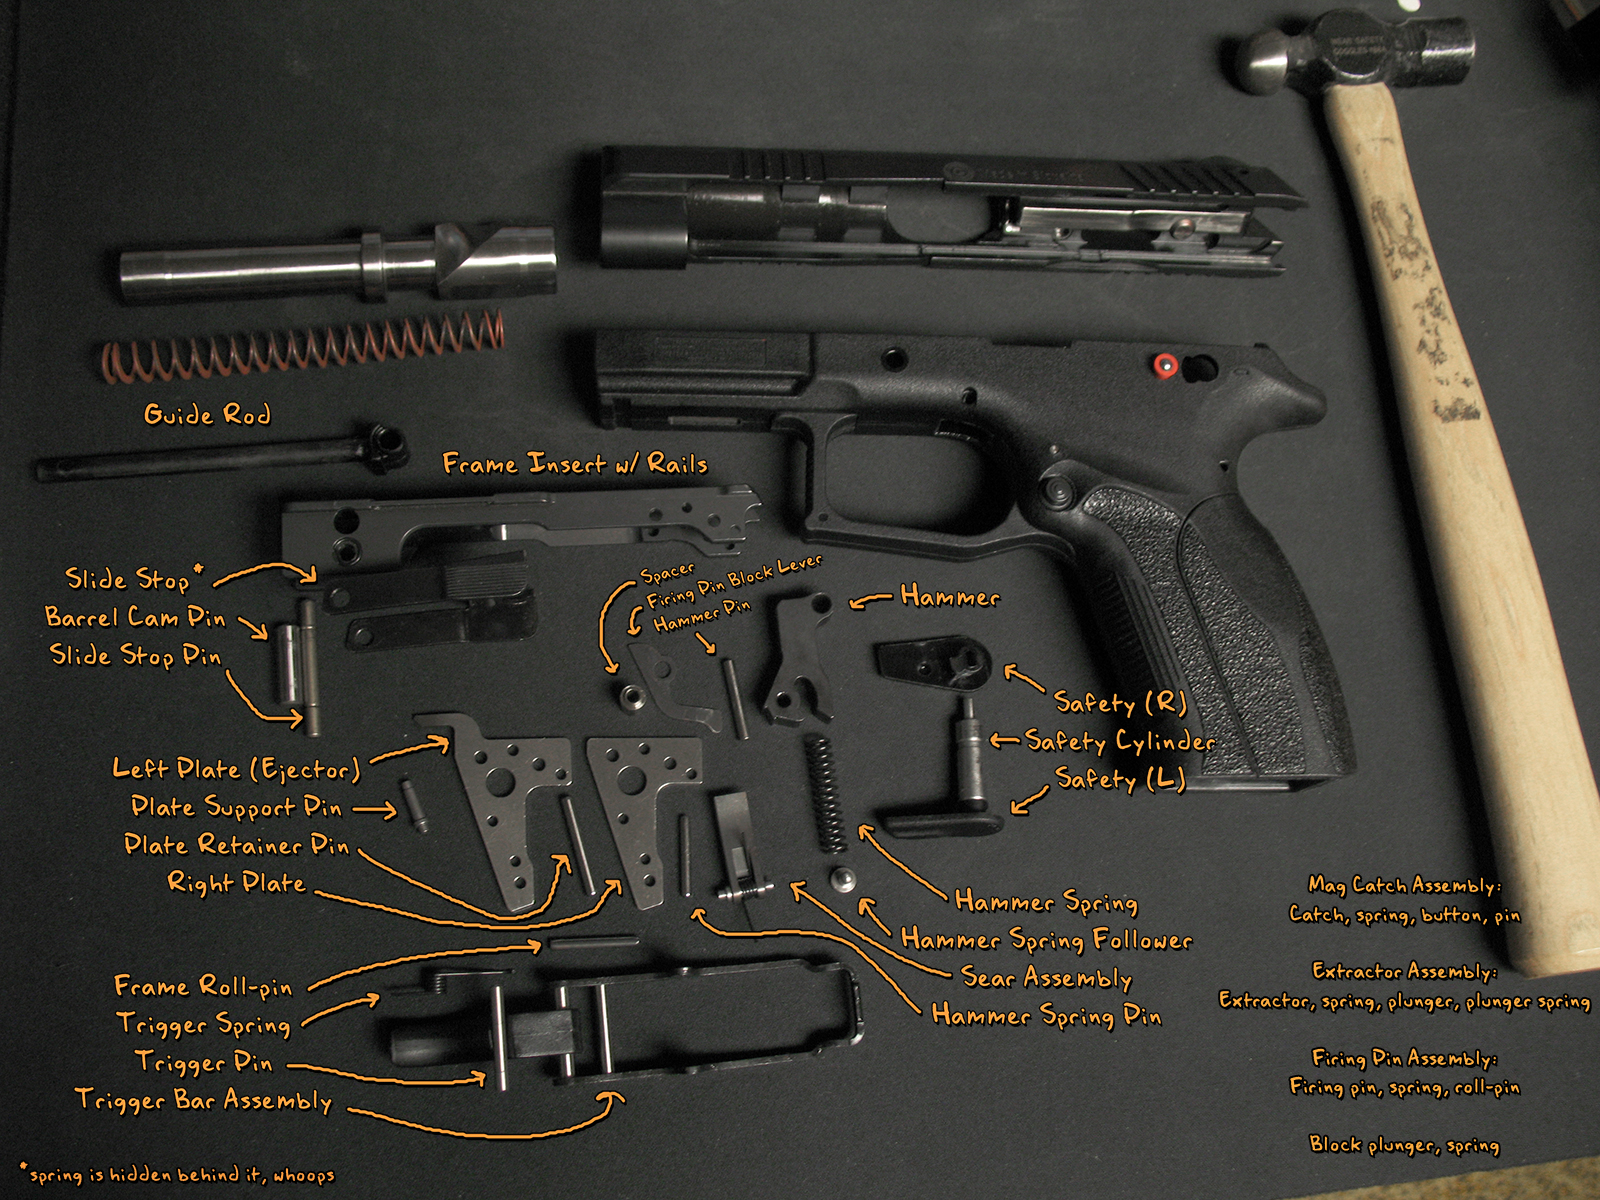 browning hi power parts diagram 2005 honda civic ignition wiring point 9mm carbine schematic get free image about